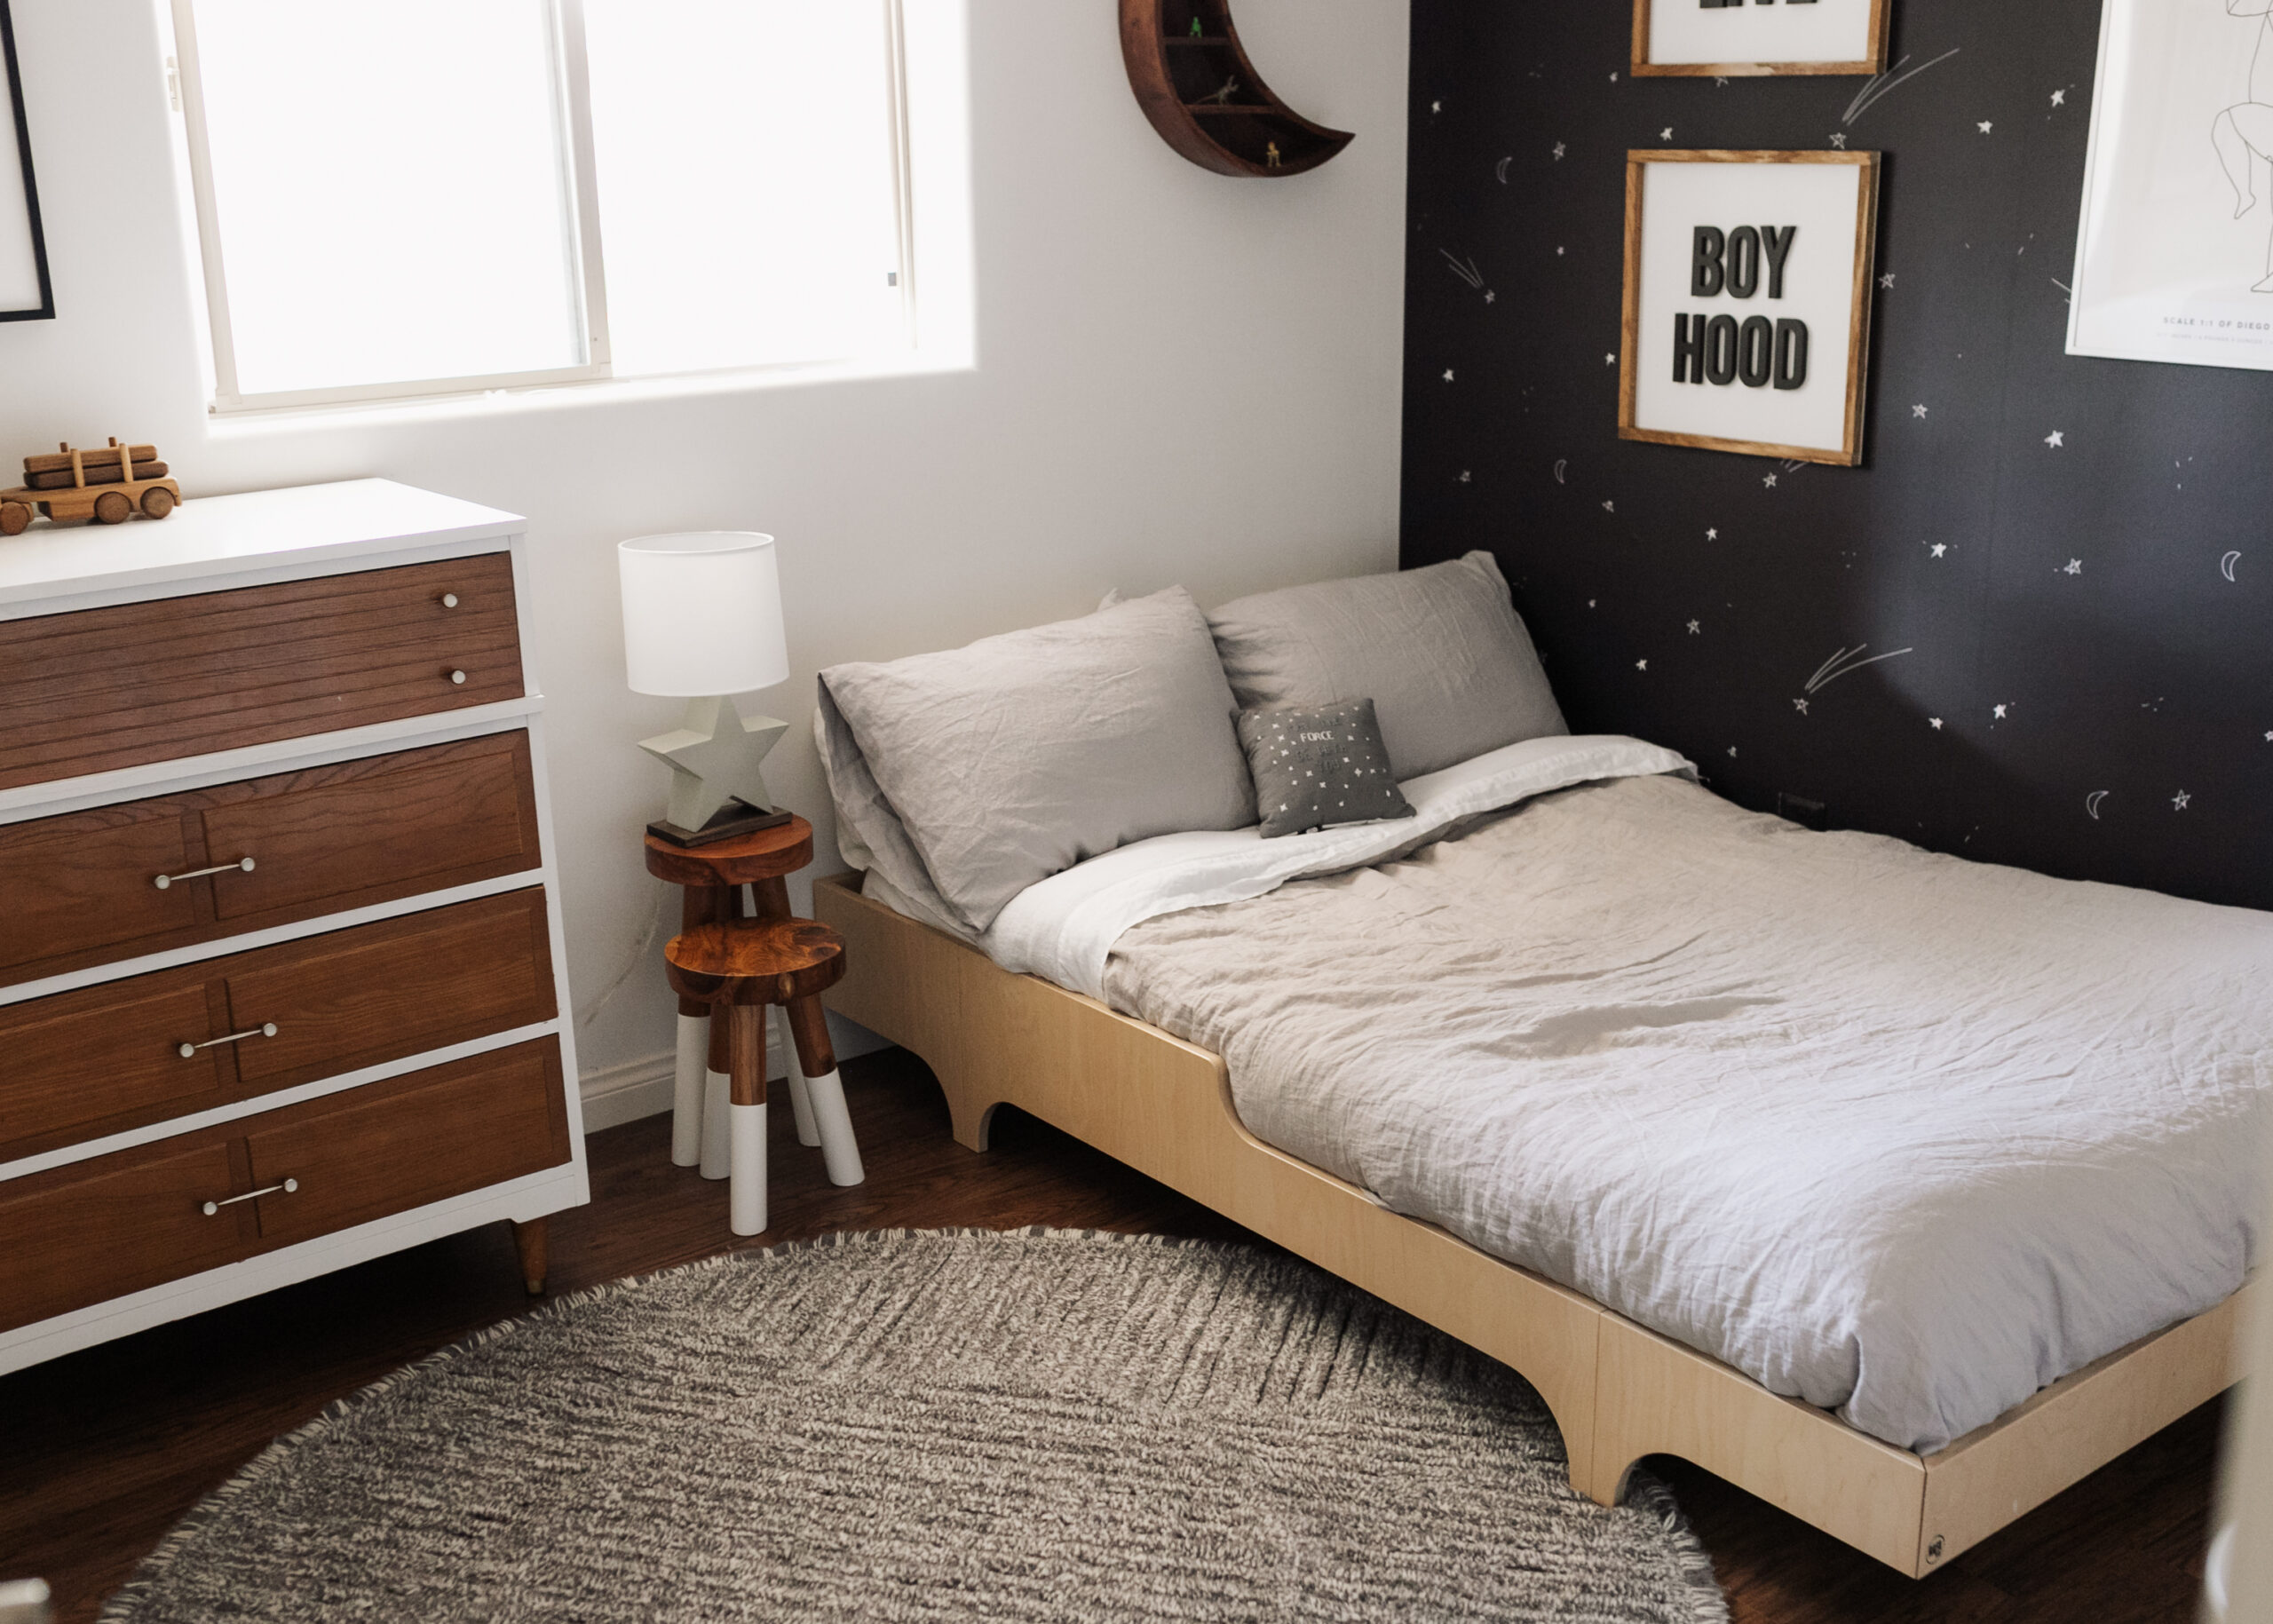 all the details for this space inspired big boy room #theldldhome #linenbedding